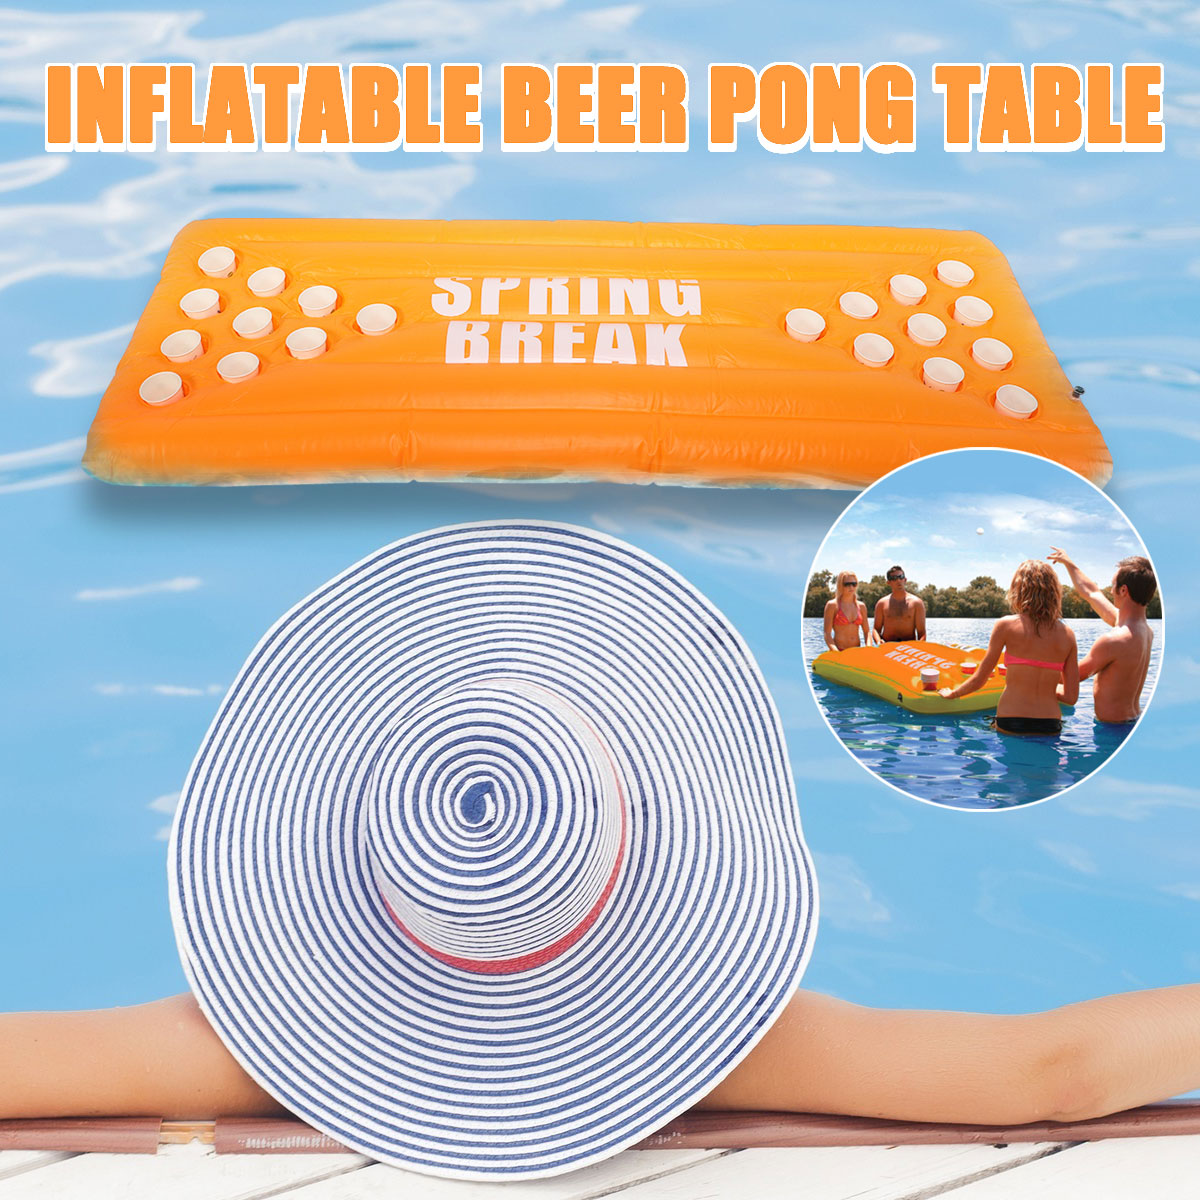 Inflatable beer pong ball table water floating raft lounge pool game 20 cups holder sale rc - Beer pong table triangle dimensions ...